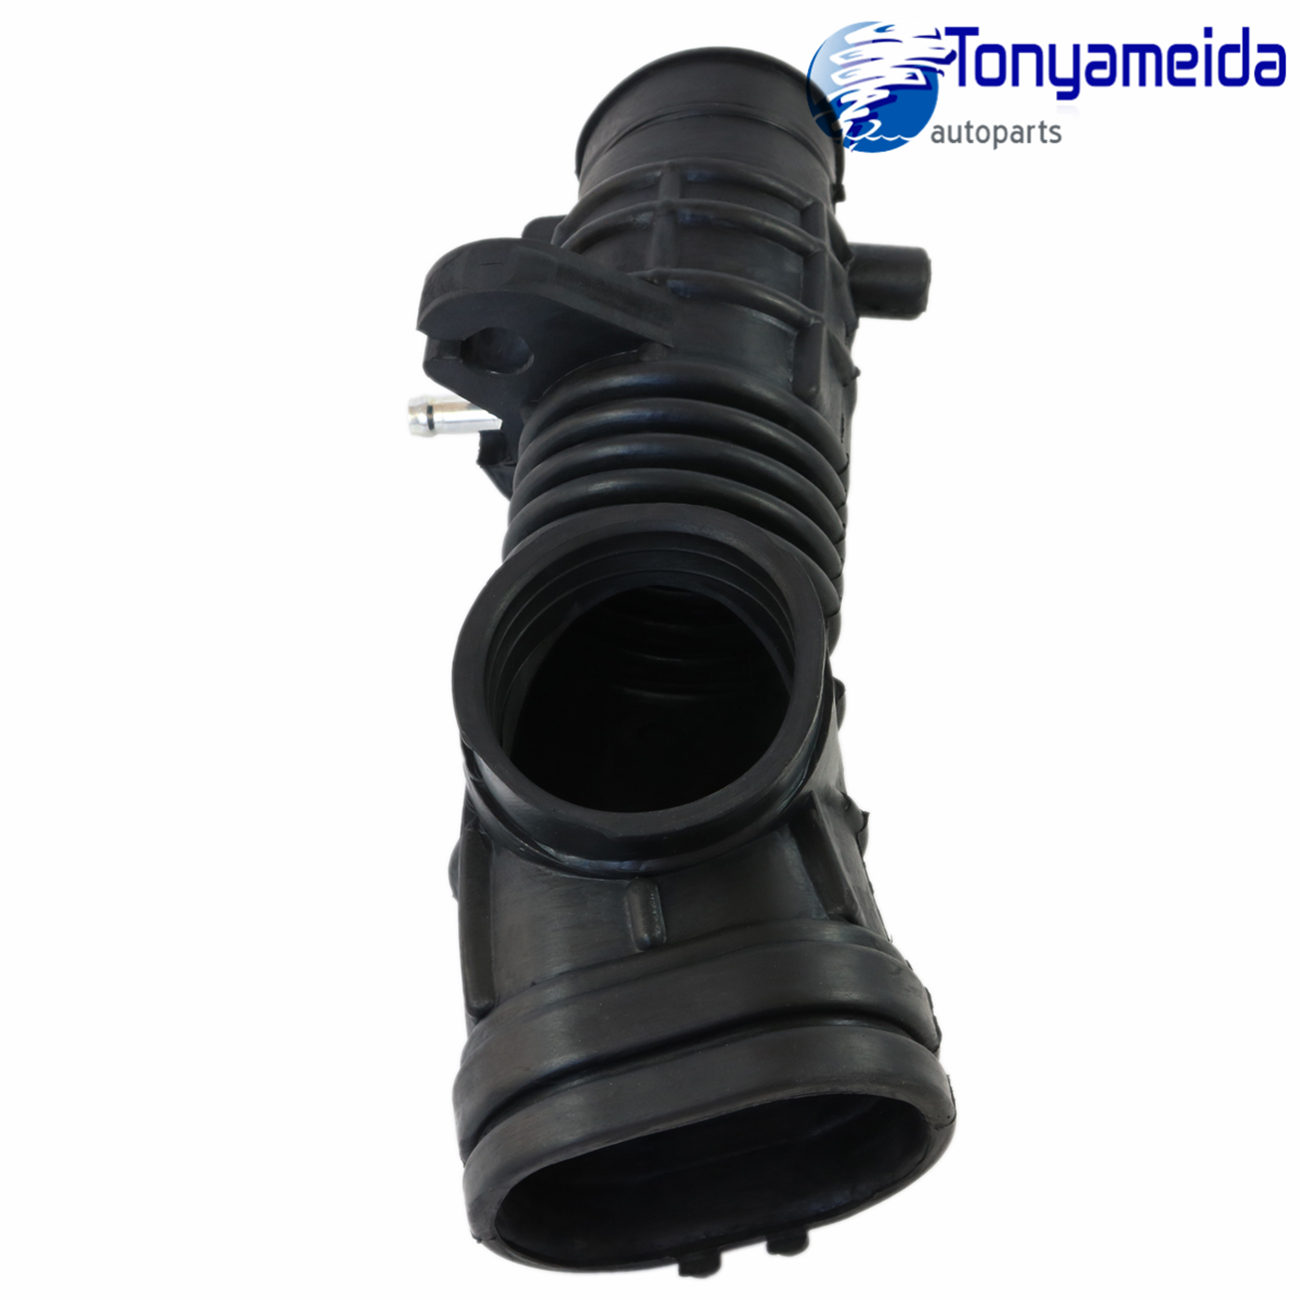 For 2001 2002 2003 Acura TL CL 3.2L V6 Engine Air Intake